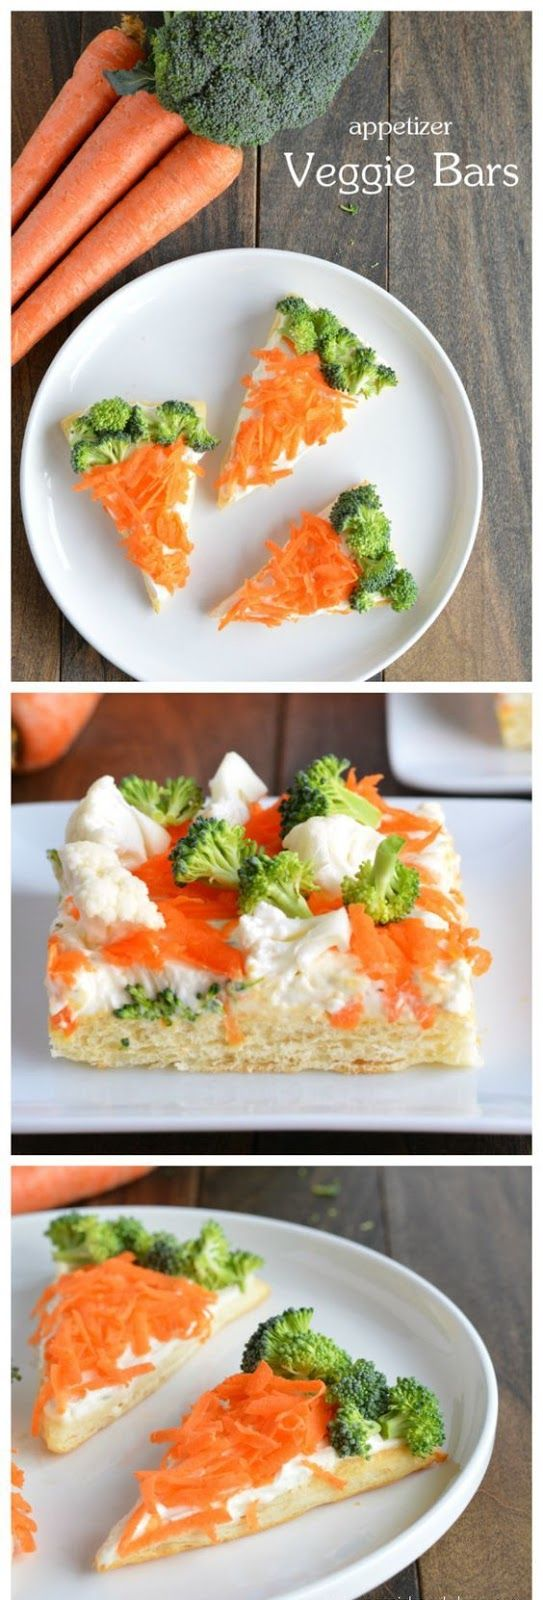 These veggie bars are perfect appetizers for easter meals. It's a light and flaky crescent roll crust layered with a cream cheese spread and then topped with fresh crunchy veggies